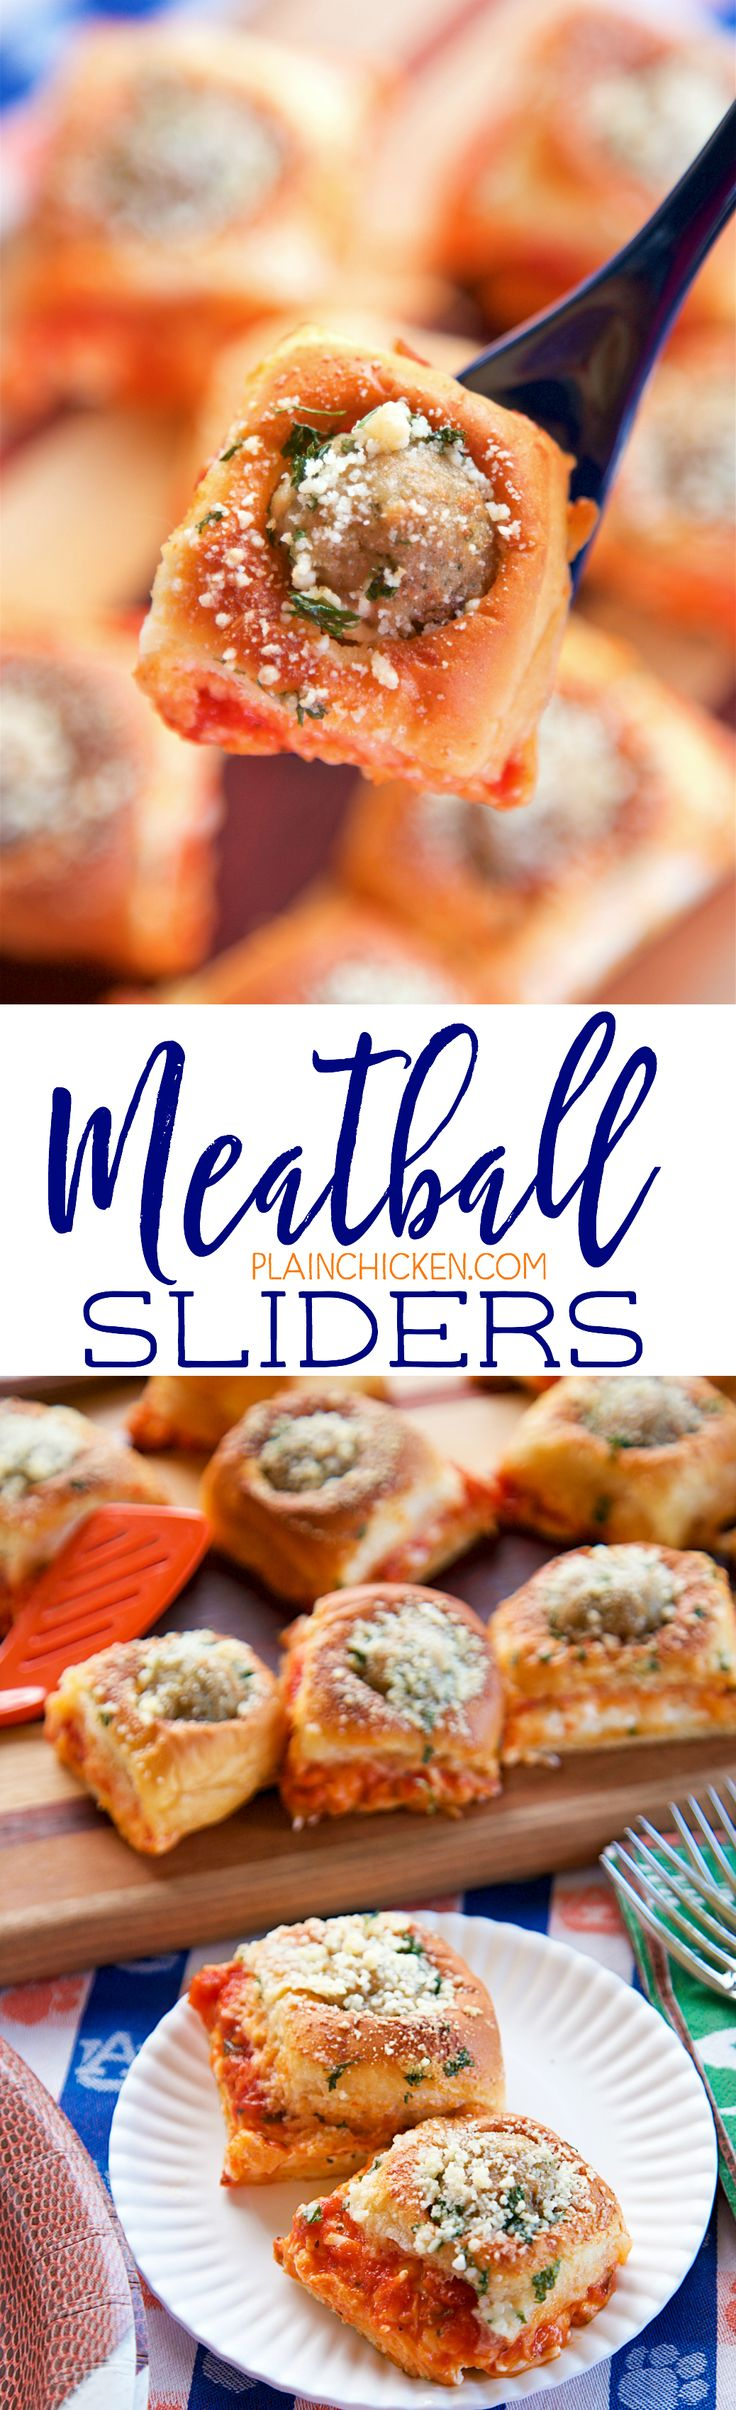 World's Fastest Meatballs - Easy No-Chop No-Roll Meatball ...